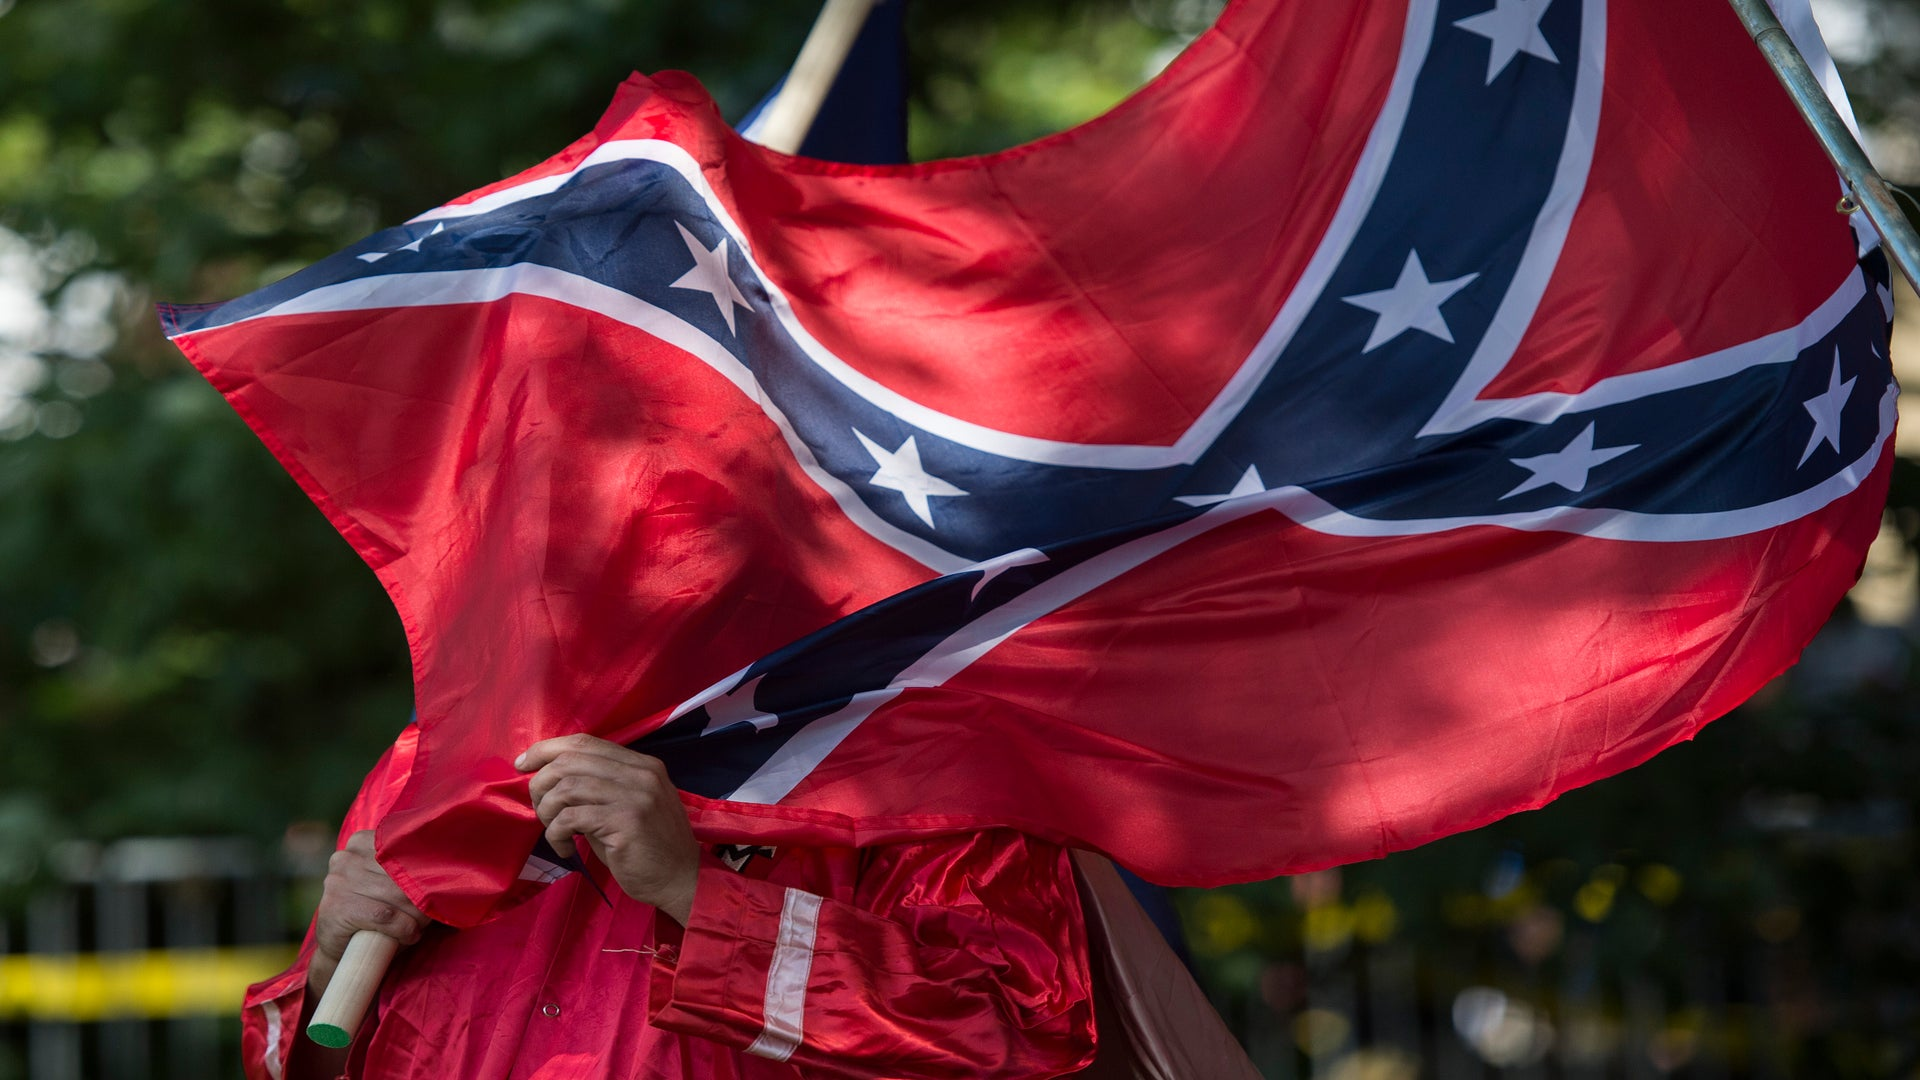 Charleston, South Carolina Formally Apologizes For Its Role in Slavery